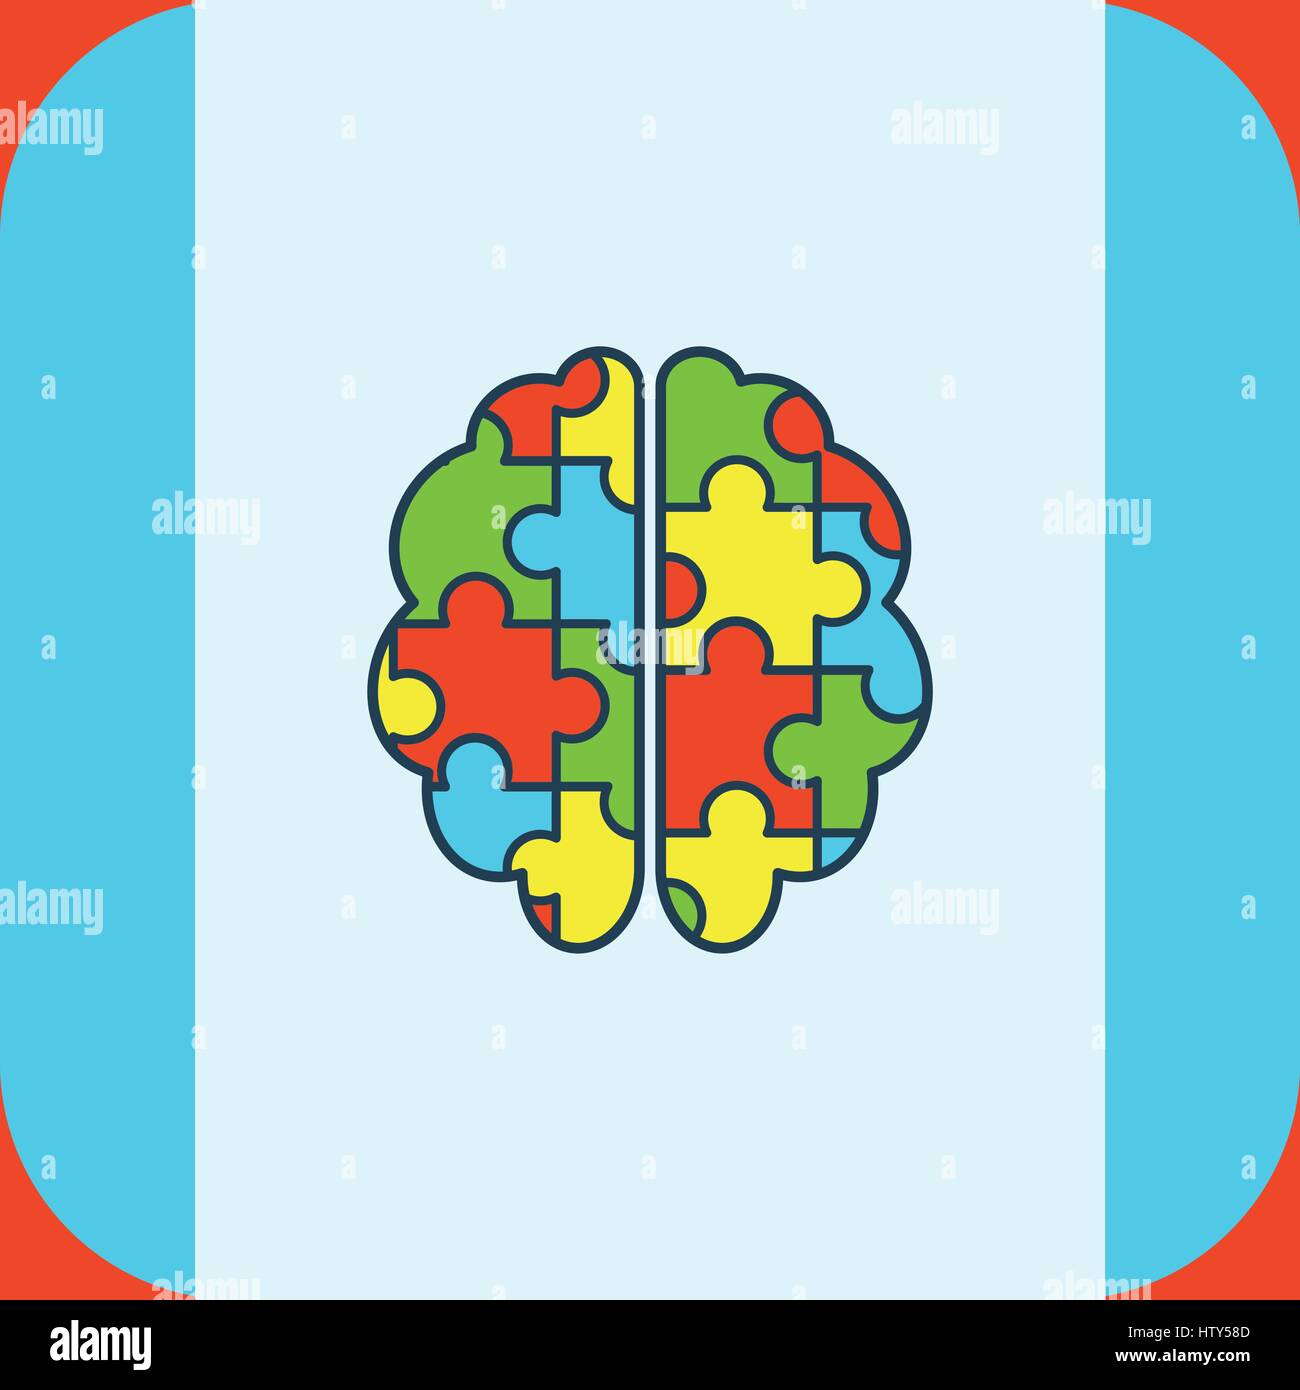 Vector of greeting card with puzzle brain symbol stock vector art vector of greeting card with puzzle brain symbol biocorpaavc Images